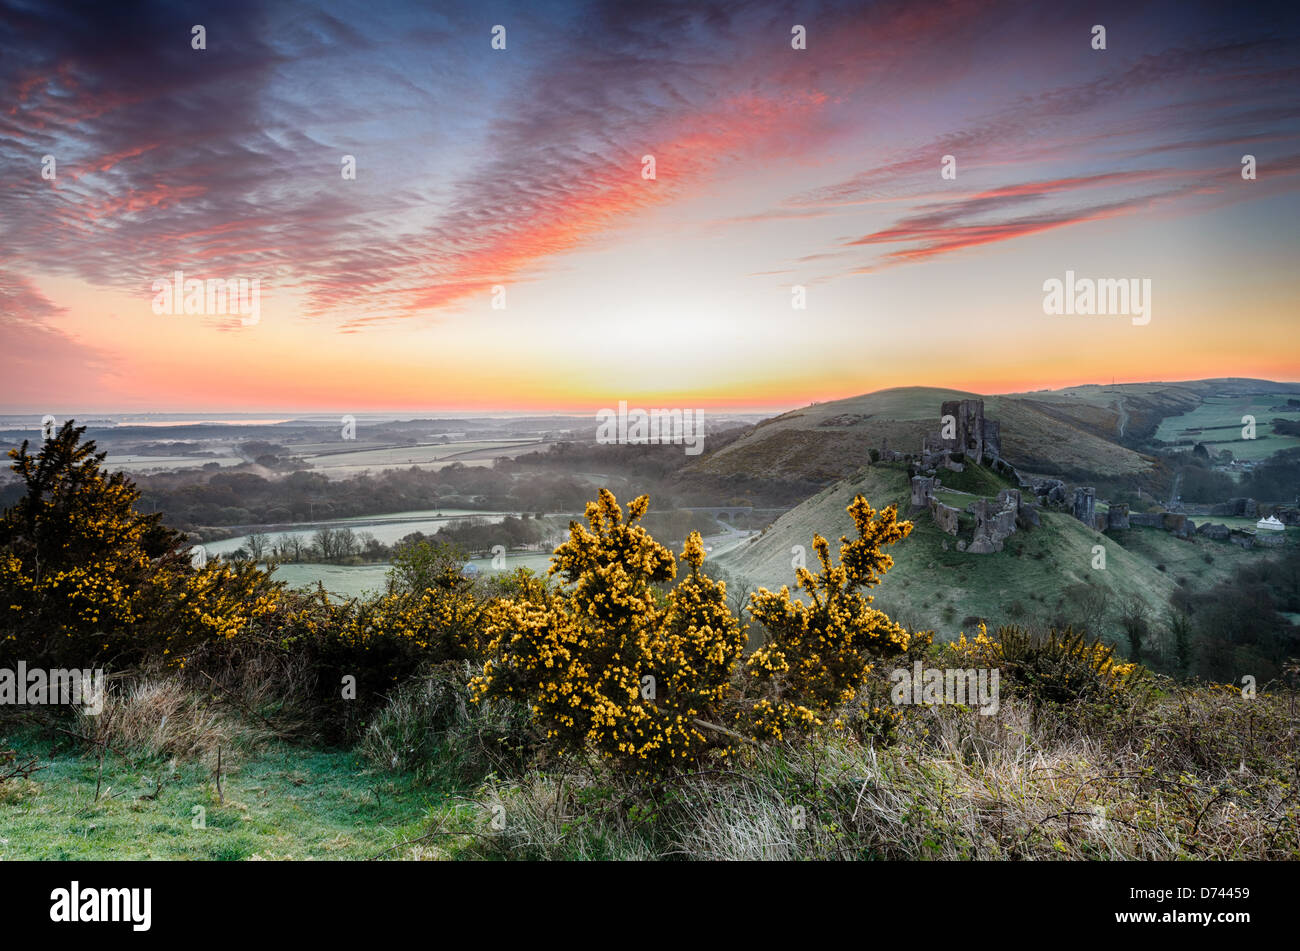 A frosty April sunrise overlooking the ruins of Corfe Castle on the Isle of Purpeck in Dorset - Stock Image